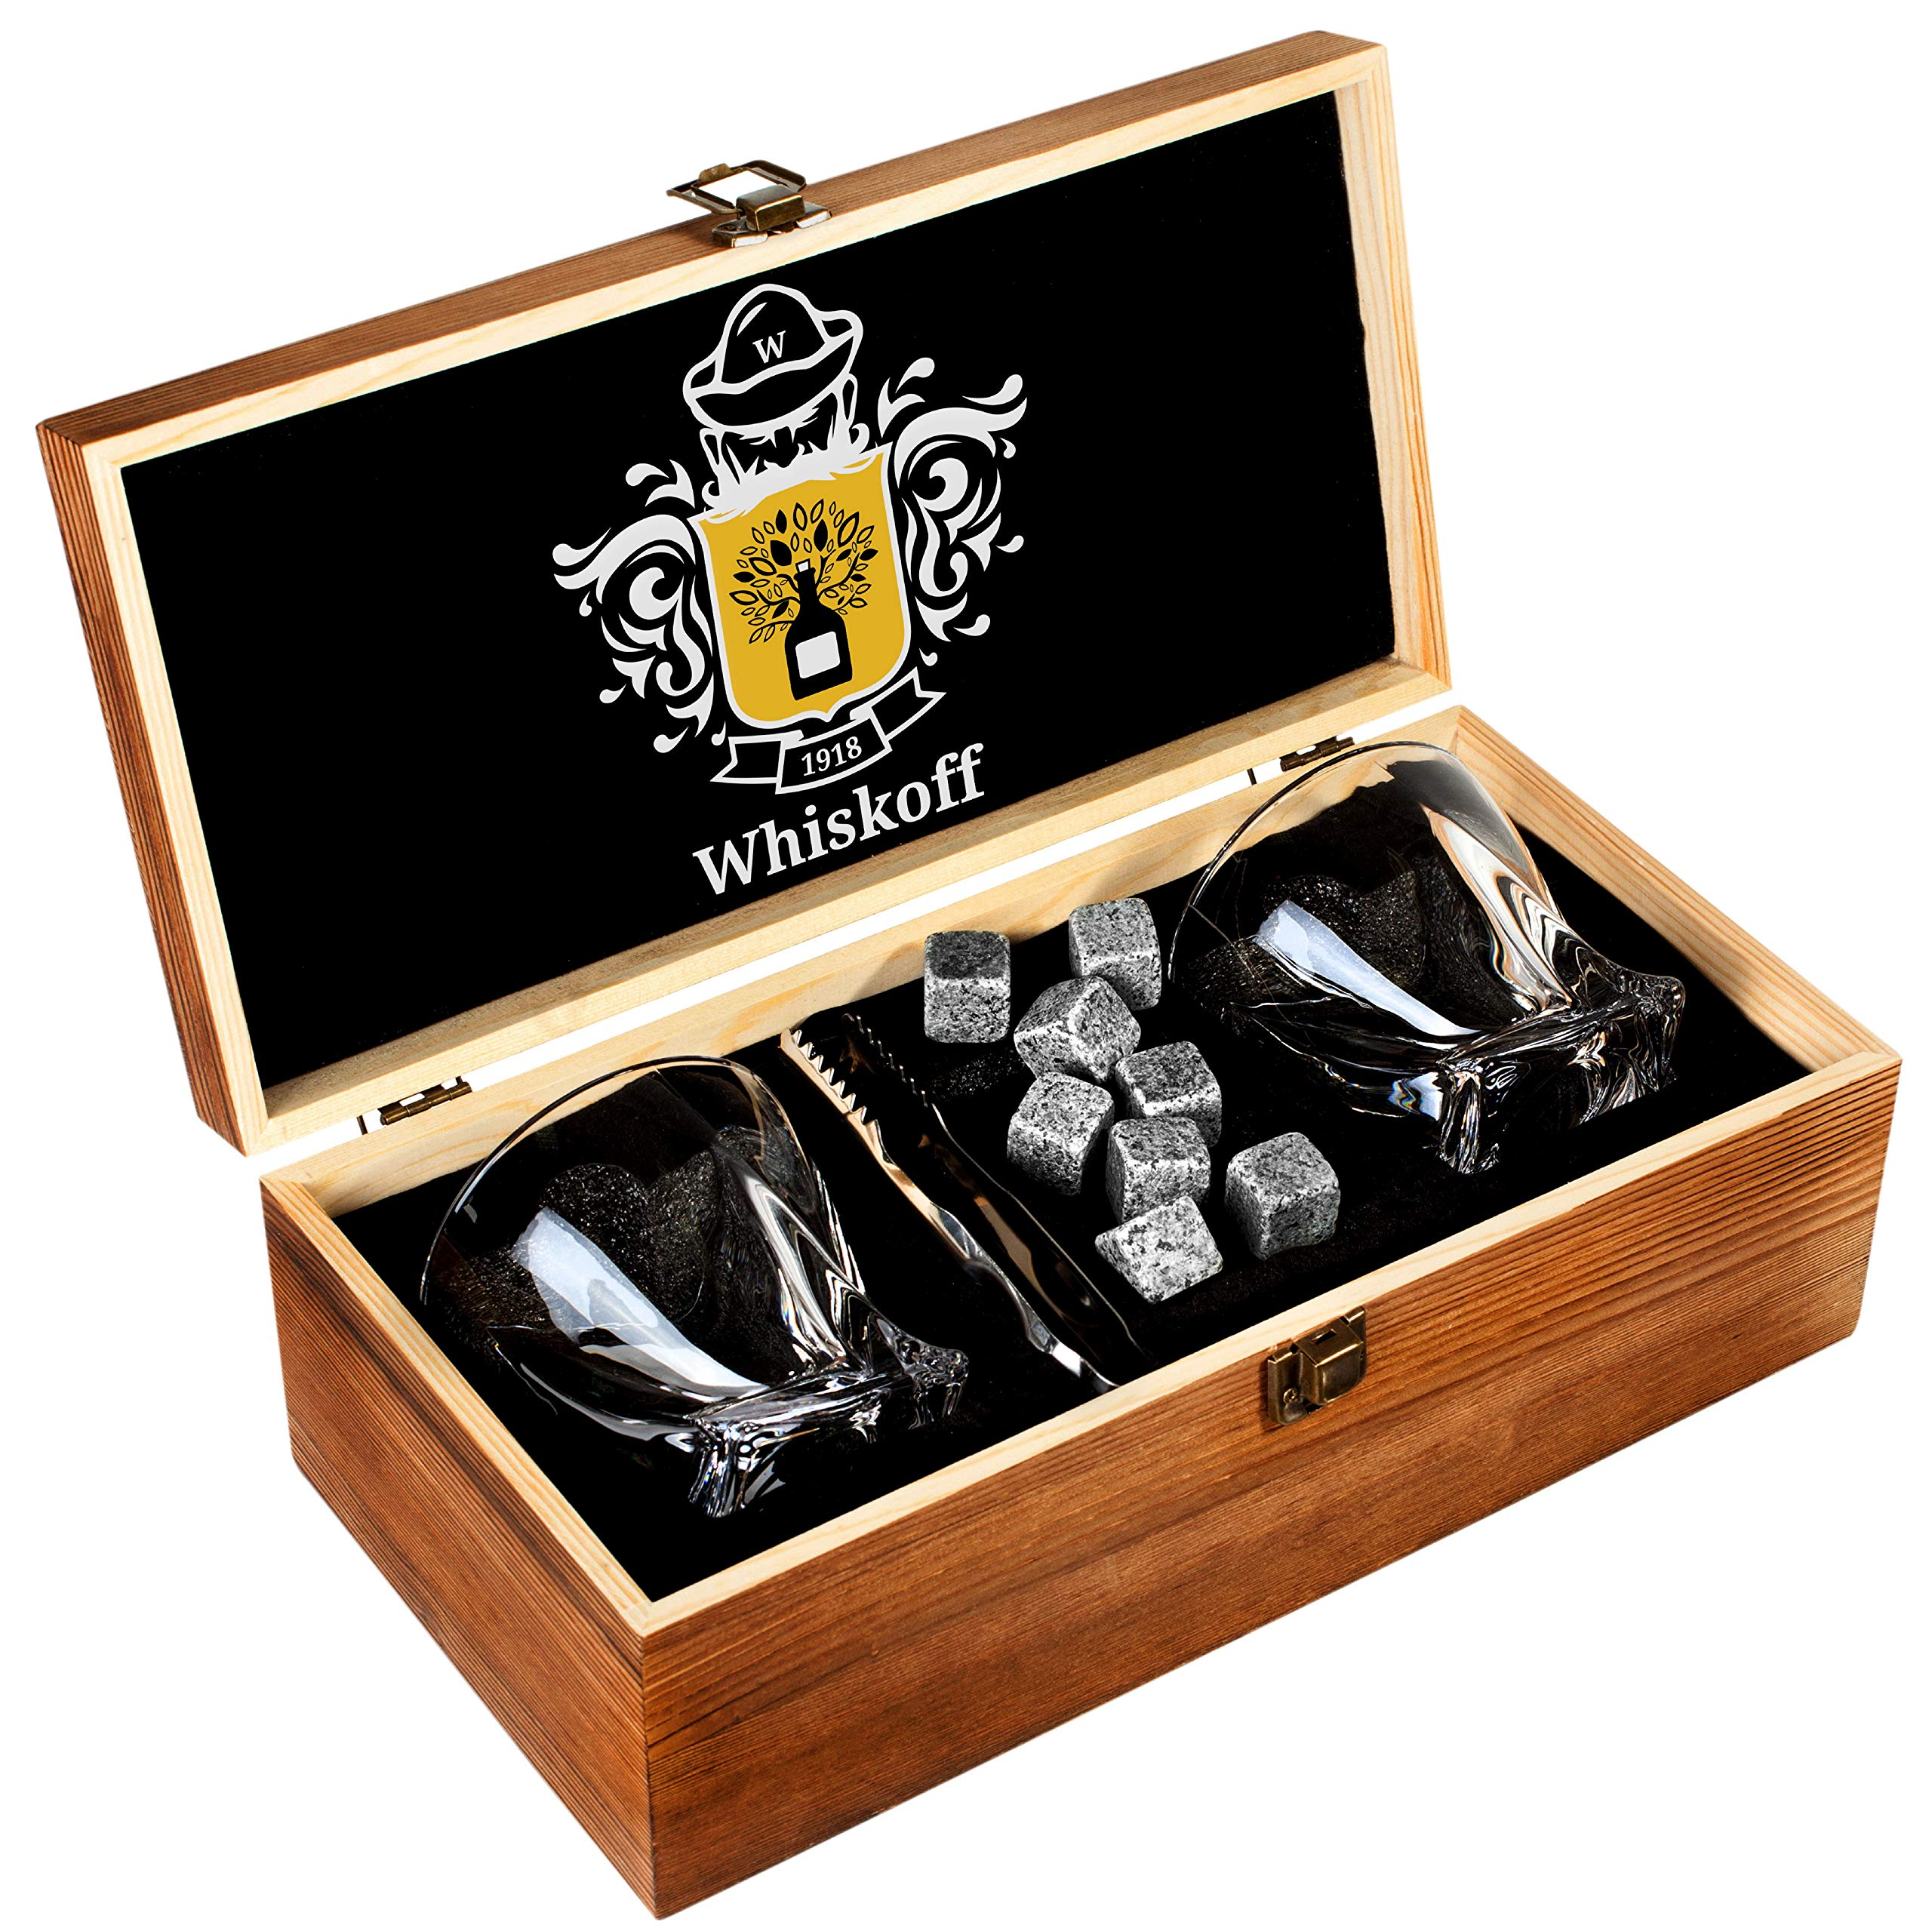 Whiskey Glass Set of 2 - Bourbon Whiskey Stones Gift Set - Twist Scotch Rocks Tongs, Coasters, Chilling Stones & Bar Glasses - Drinking Glasses for Men & Woman - Whiskey Glassware in Wooden Gift Box by Whiskoff